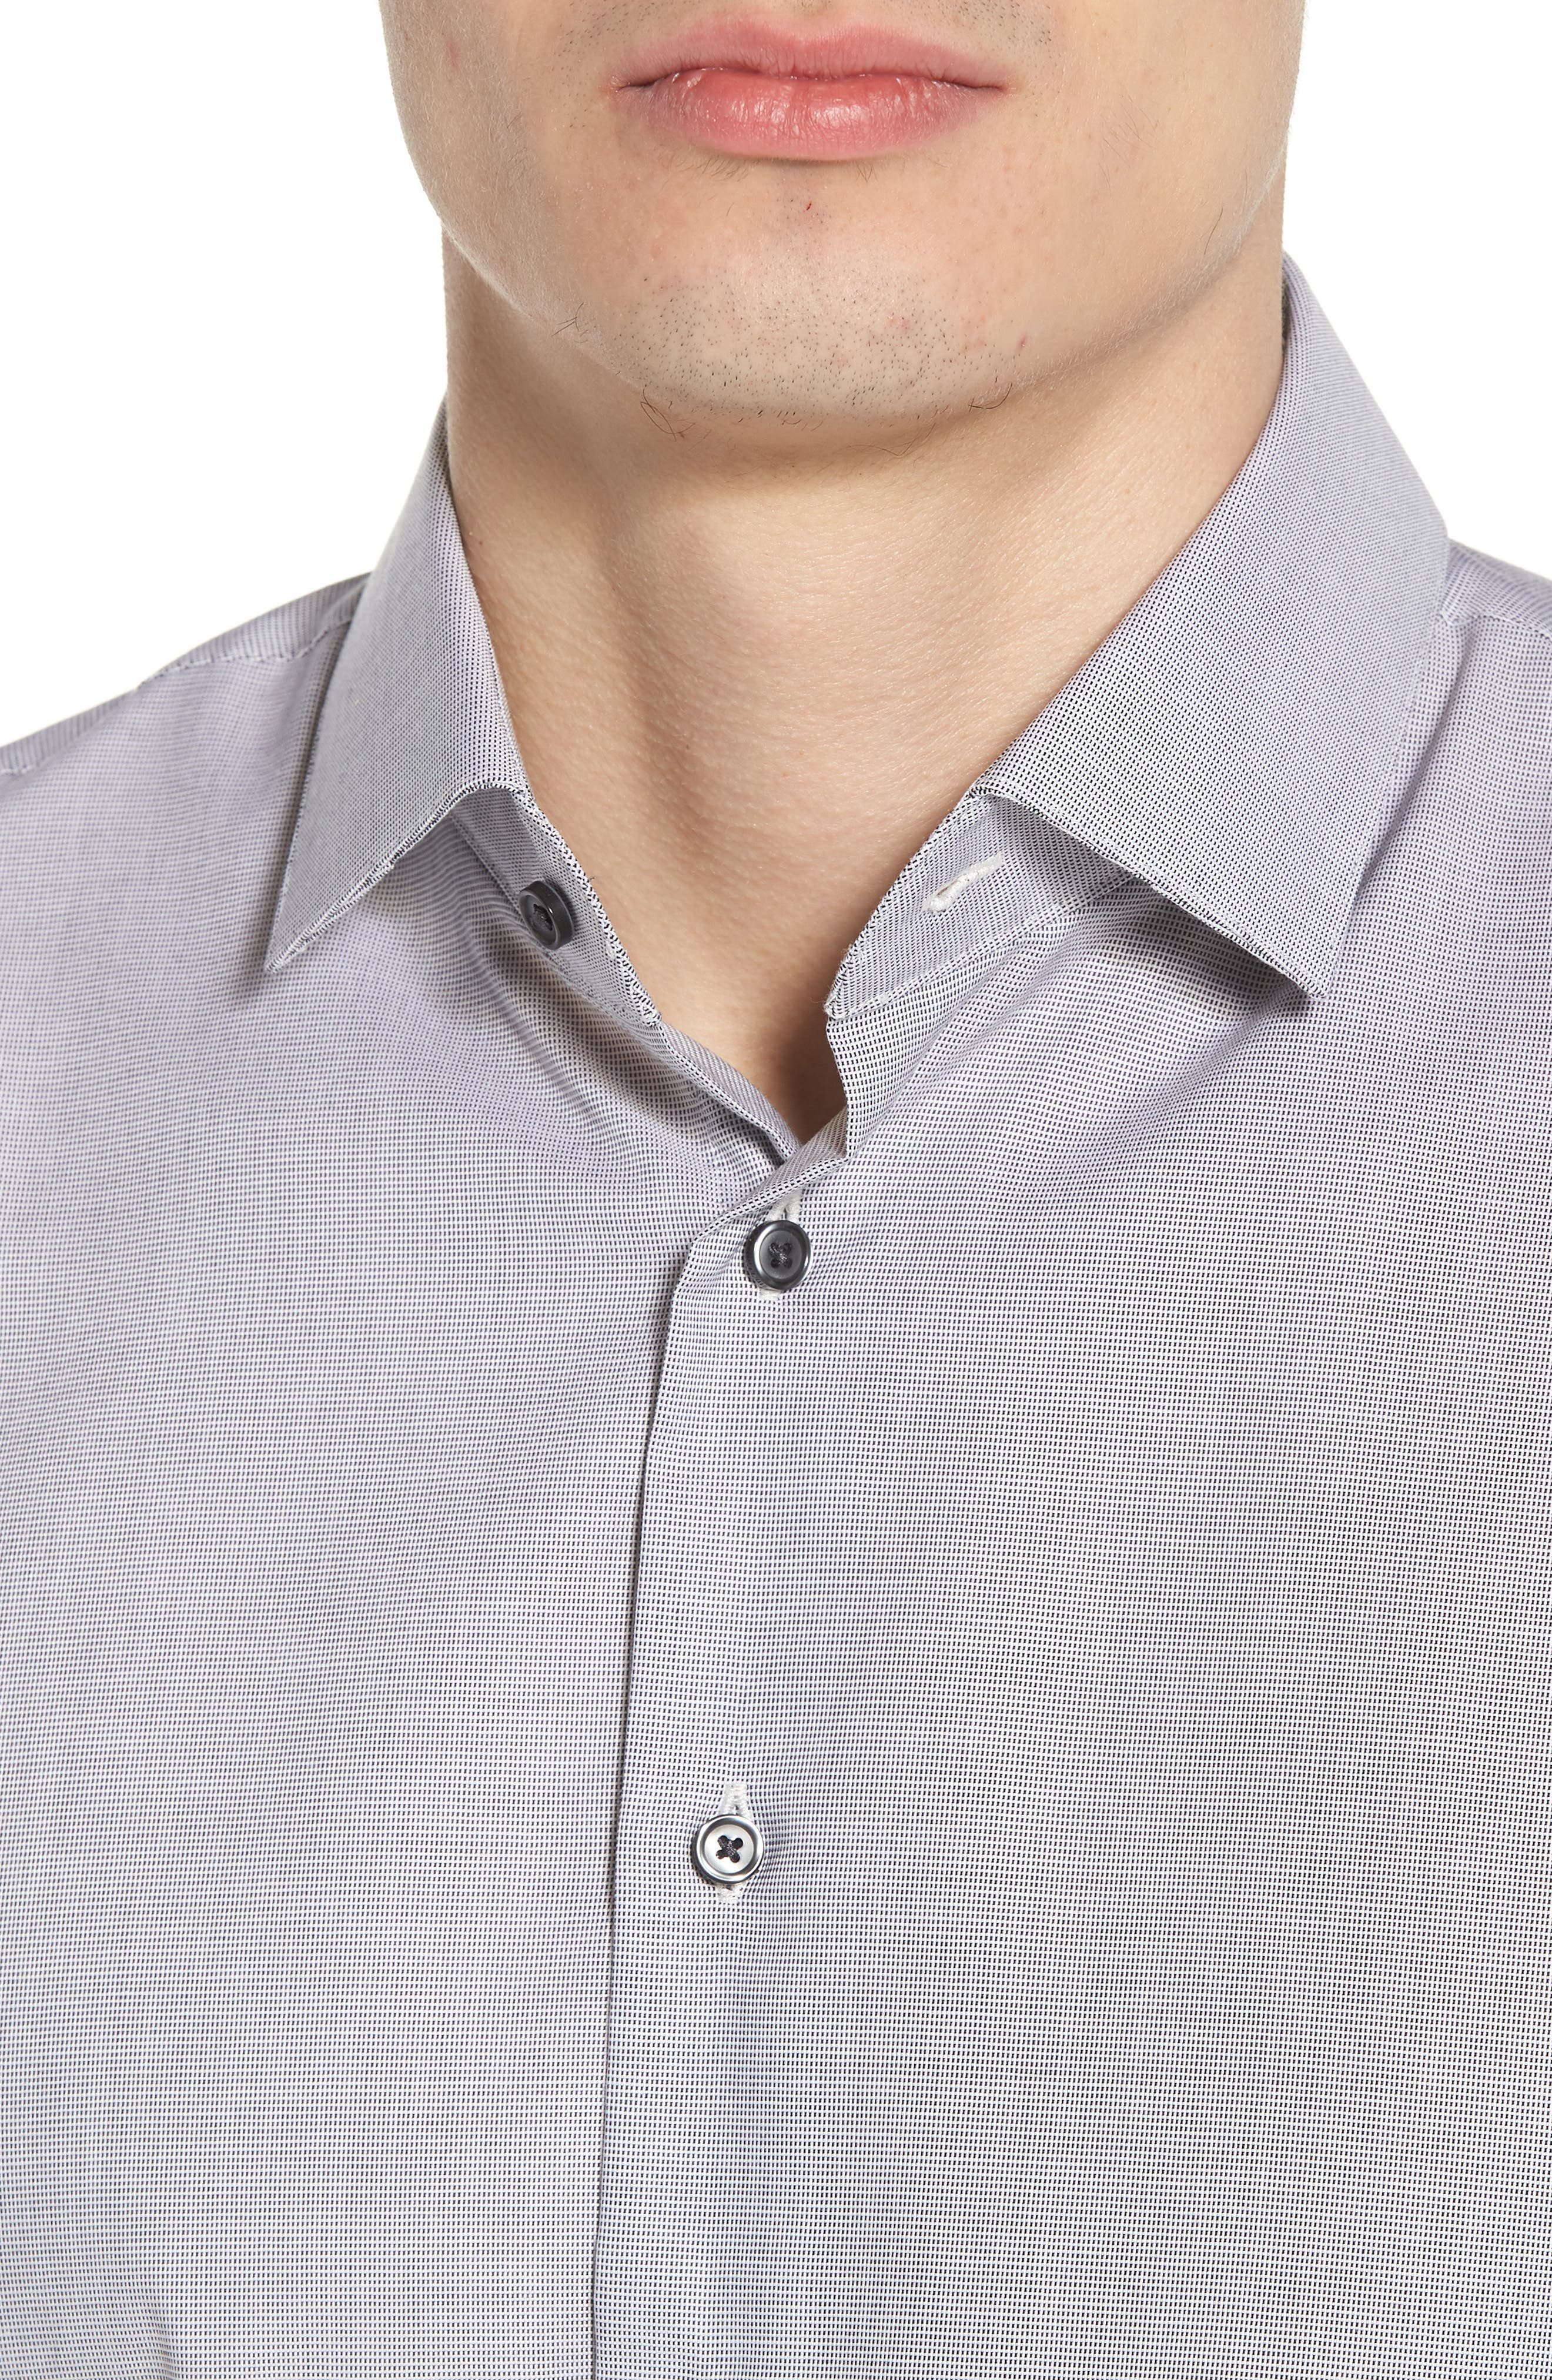 Trim Fit Non-Iron Stretch Solid Dress Shirt,                             Alternate thumbnail 2, color,                             Grey Sconce